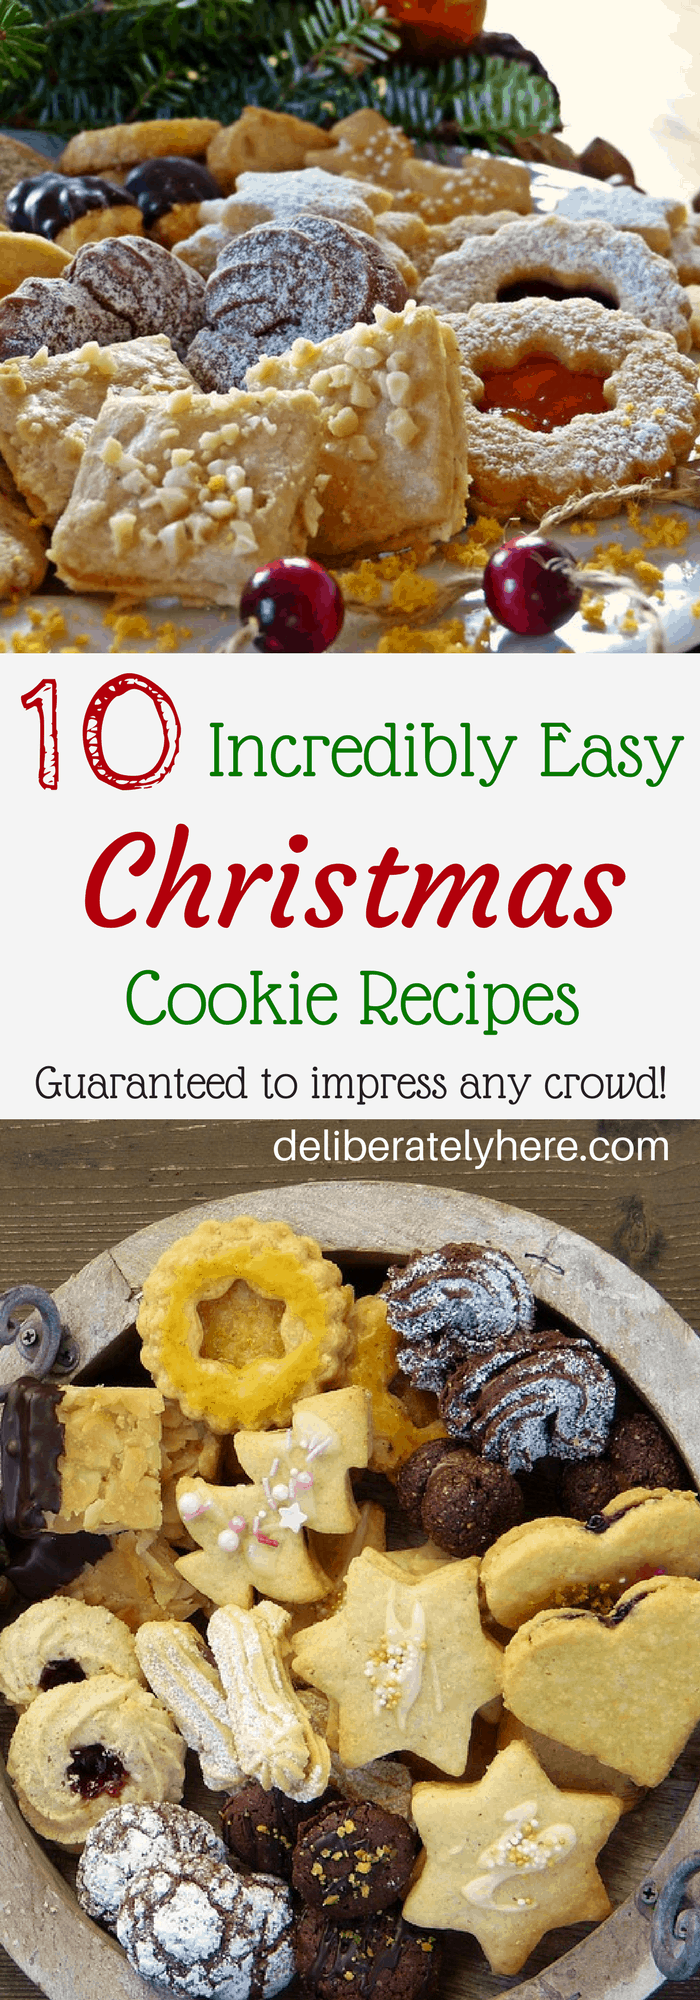 10 Super Easy Christmas Cookie Recipes That Will Impress Any Crowd!